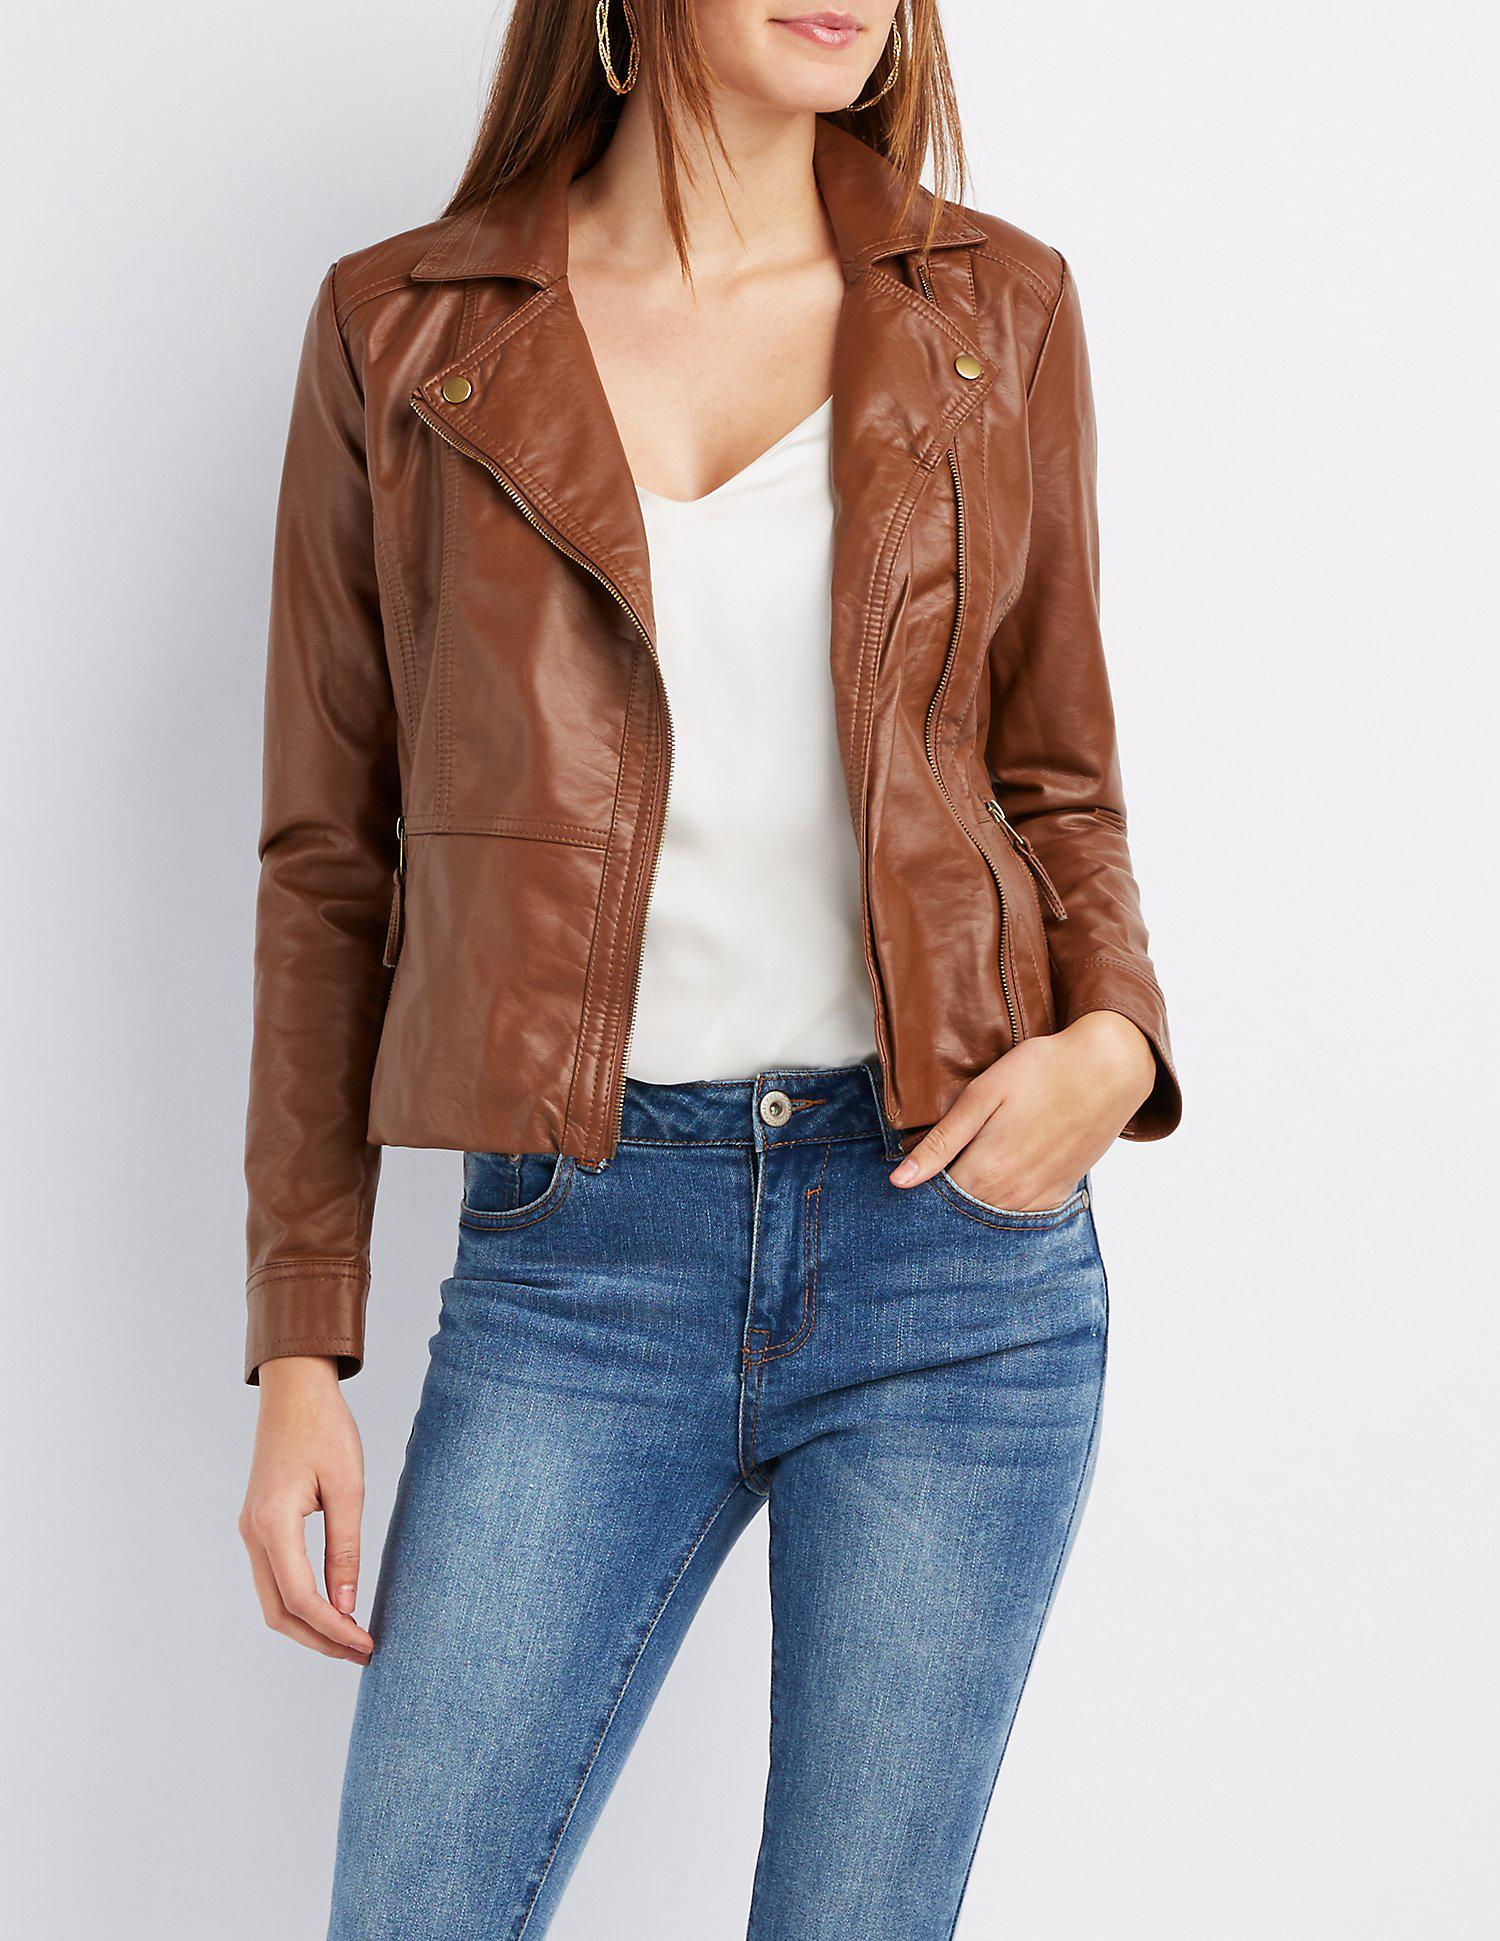 c0cc15f6f74 Lyst - Charlotte Russe Faux Leather Moto Jacket in Brown